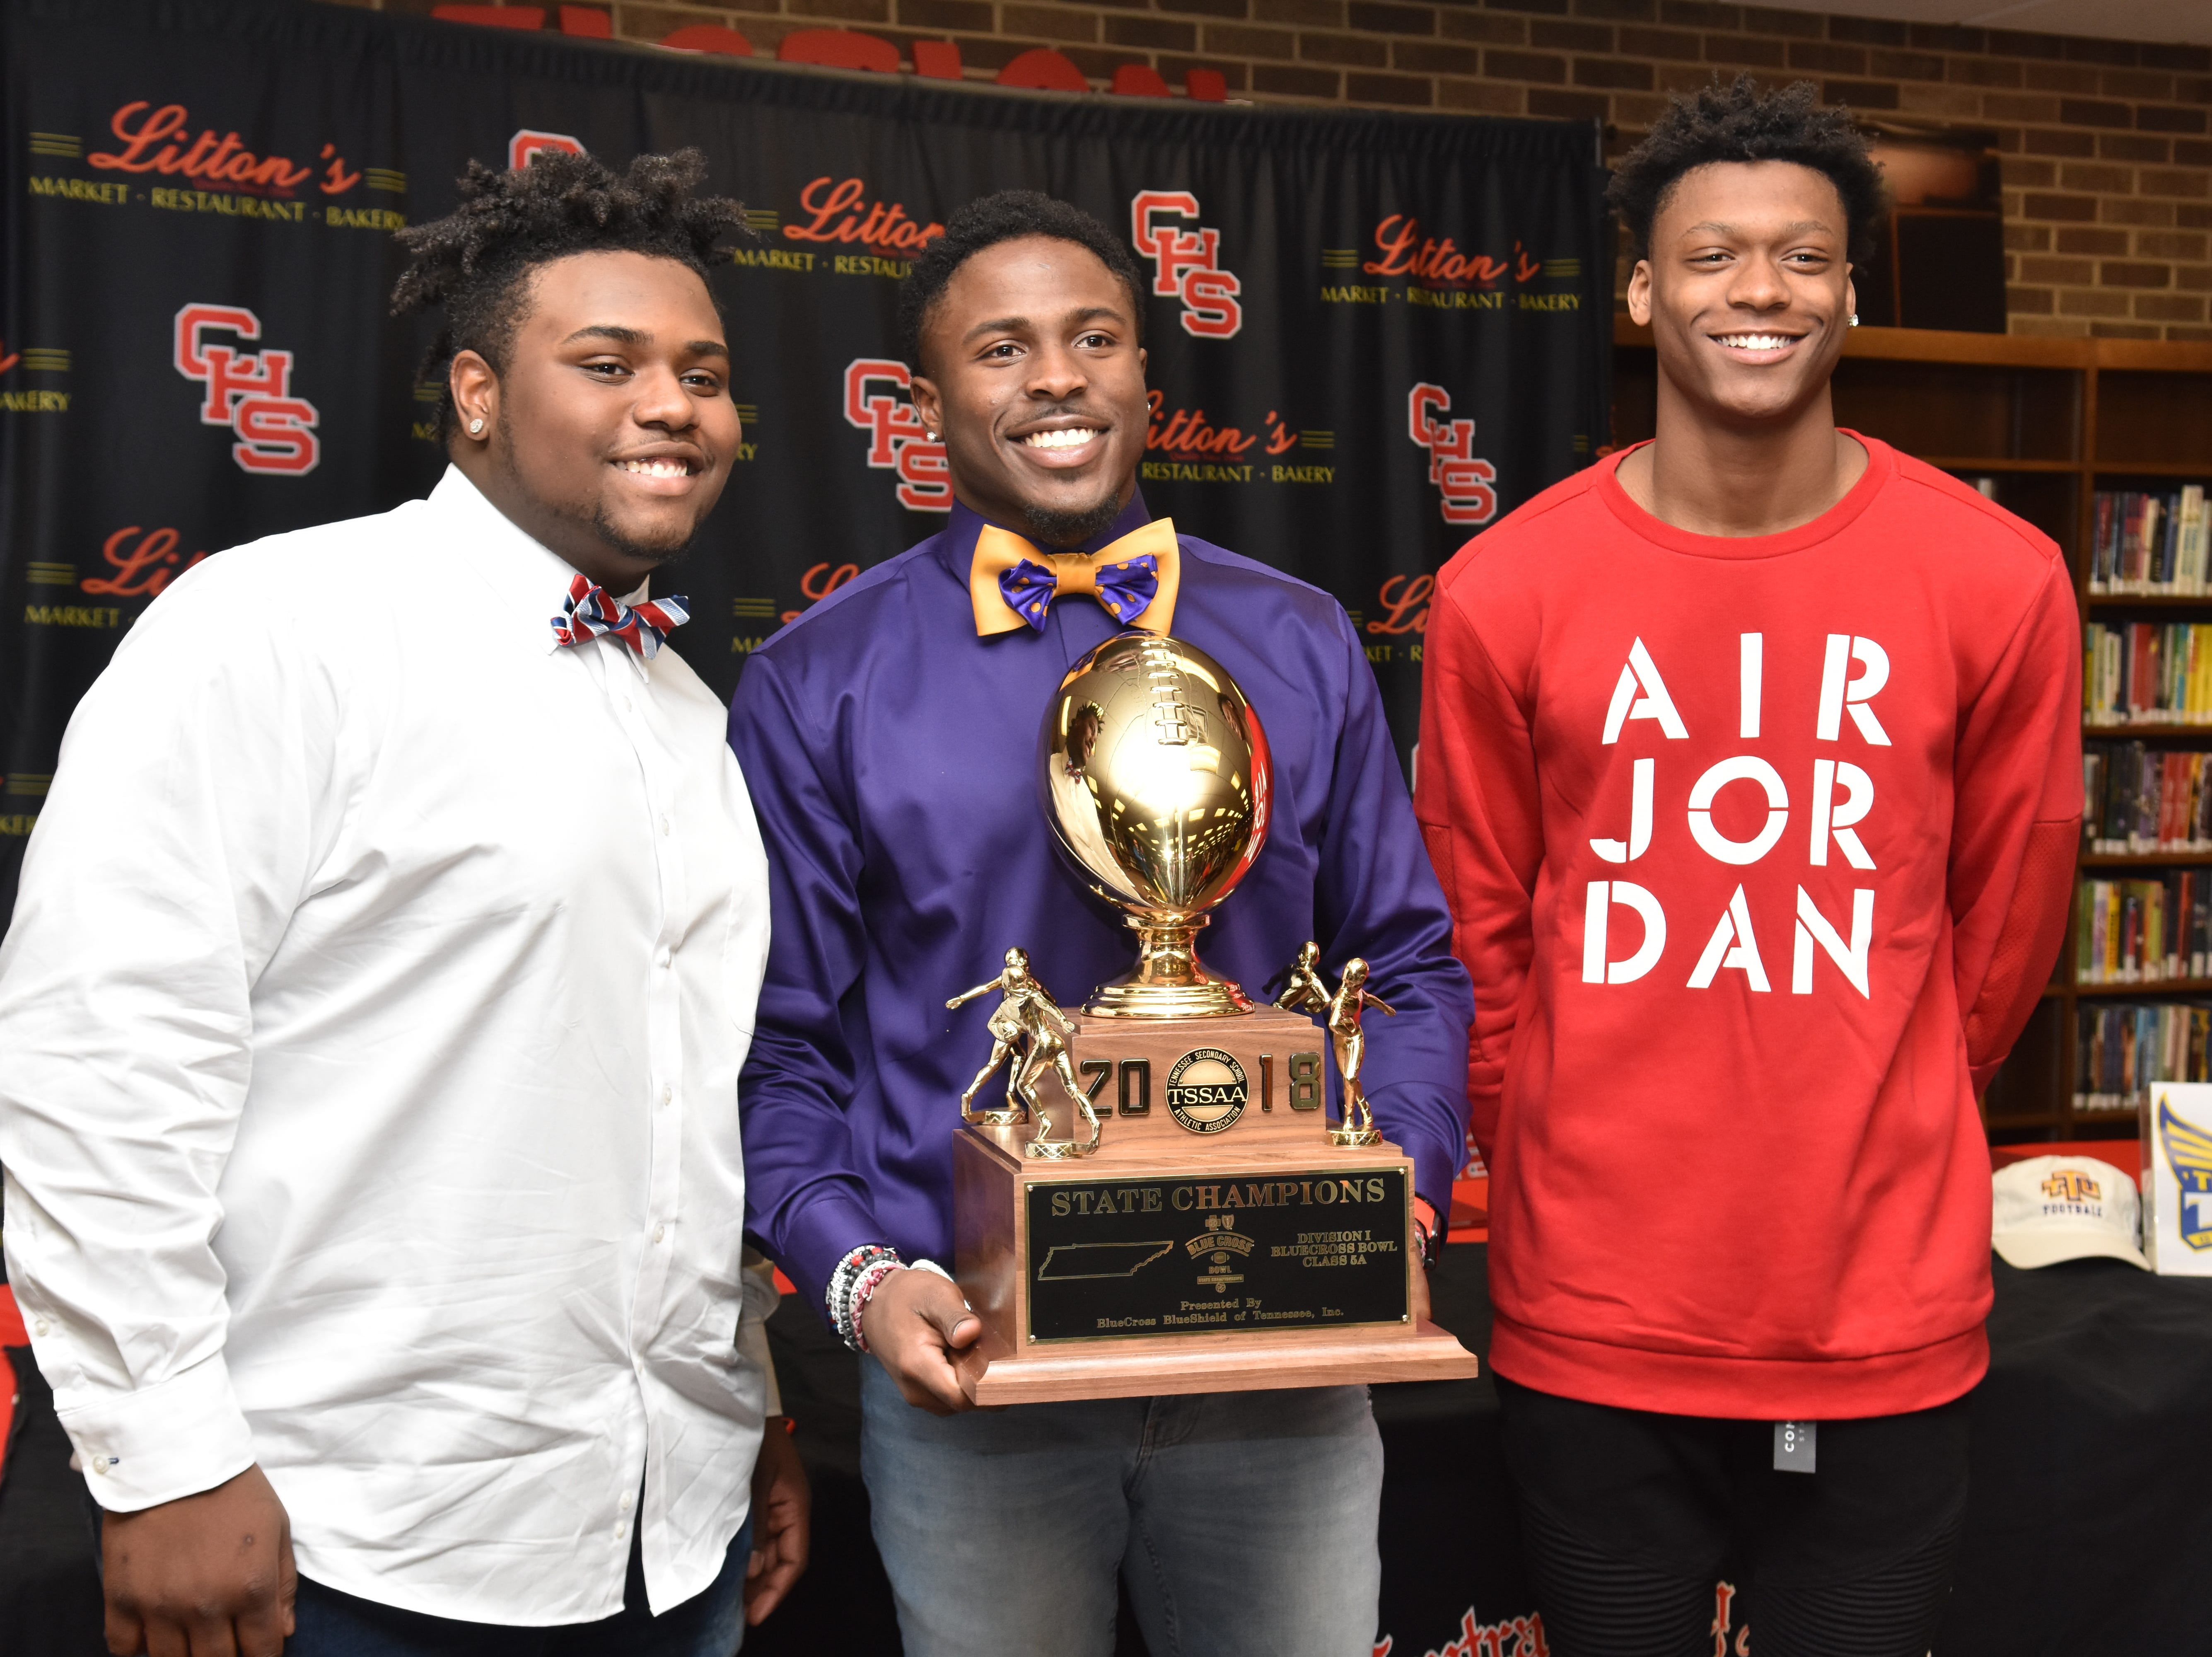 Jalynn Clemons, Xavier Washington and Demetrian Johnson, all Central seniors, signed letters of intent to play college football on Monday, Feb. 11, 2019.